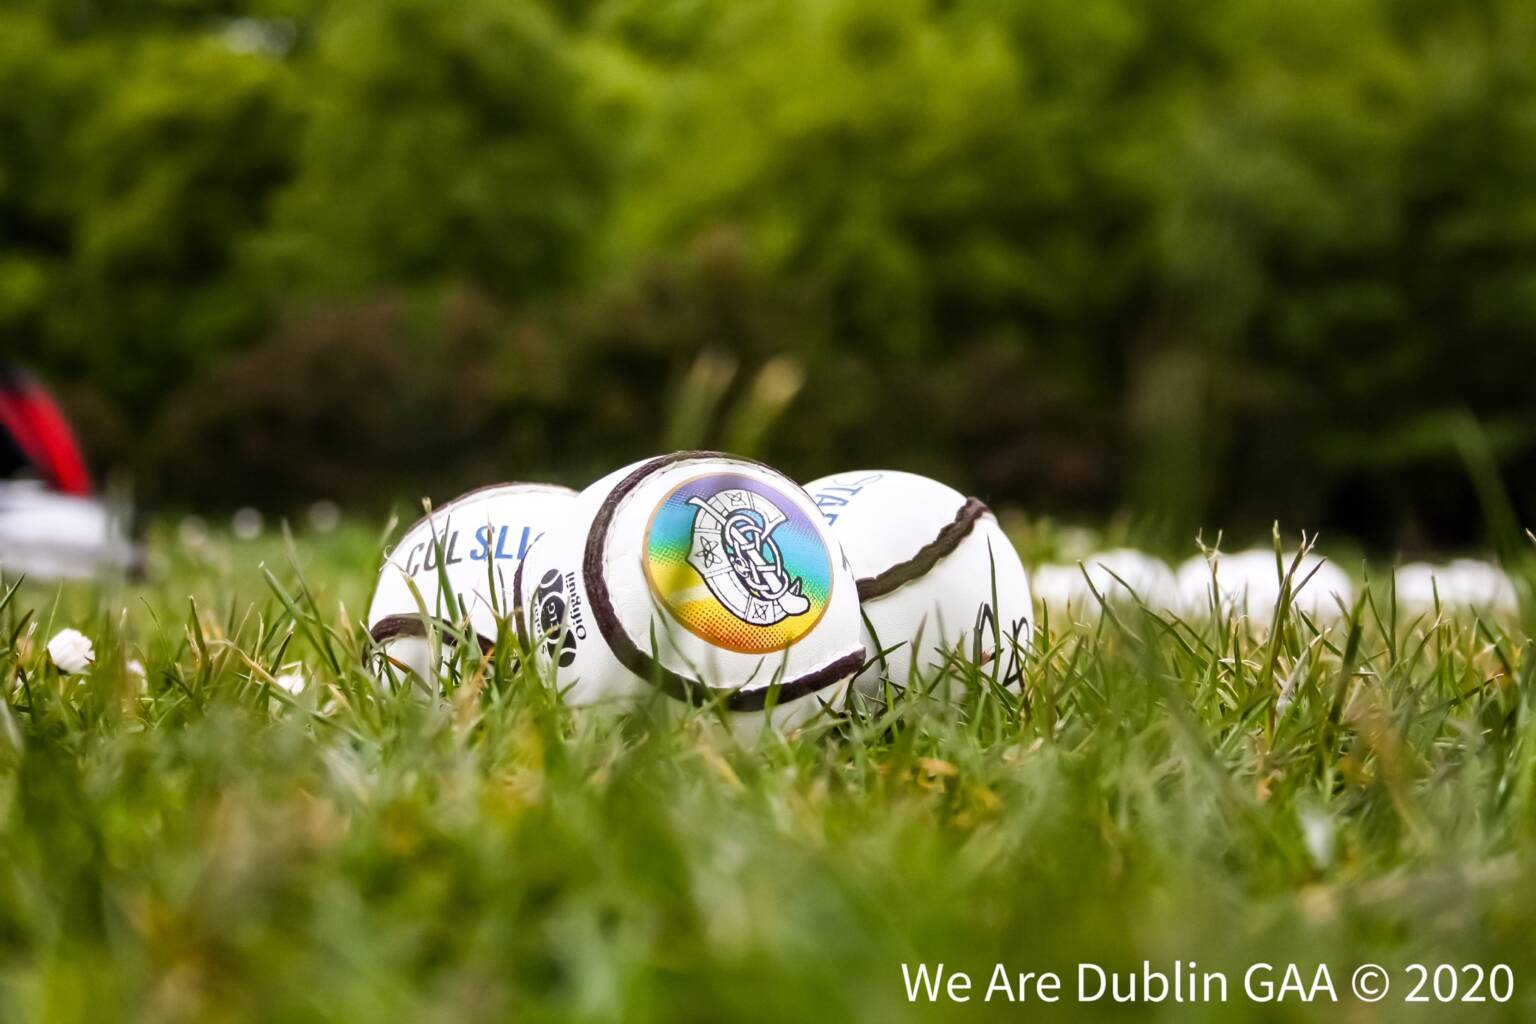 The sliotars on a grass pitch with the Camogie Association on them, the Association has announced the launch of its first Disability Inclusion Policy